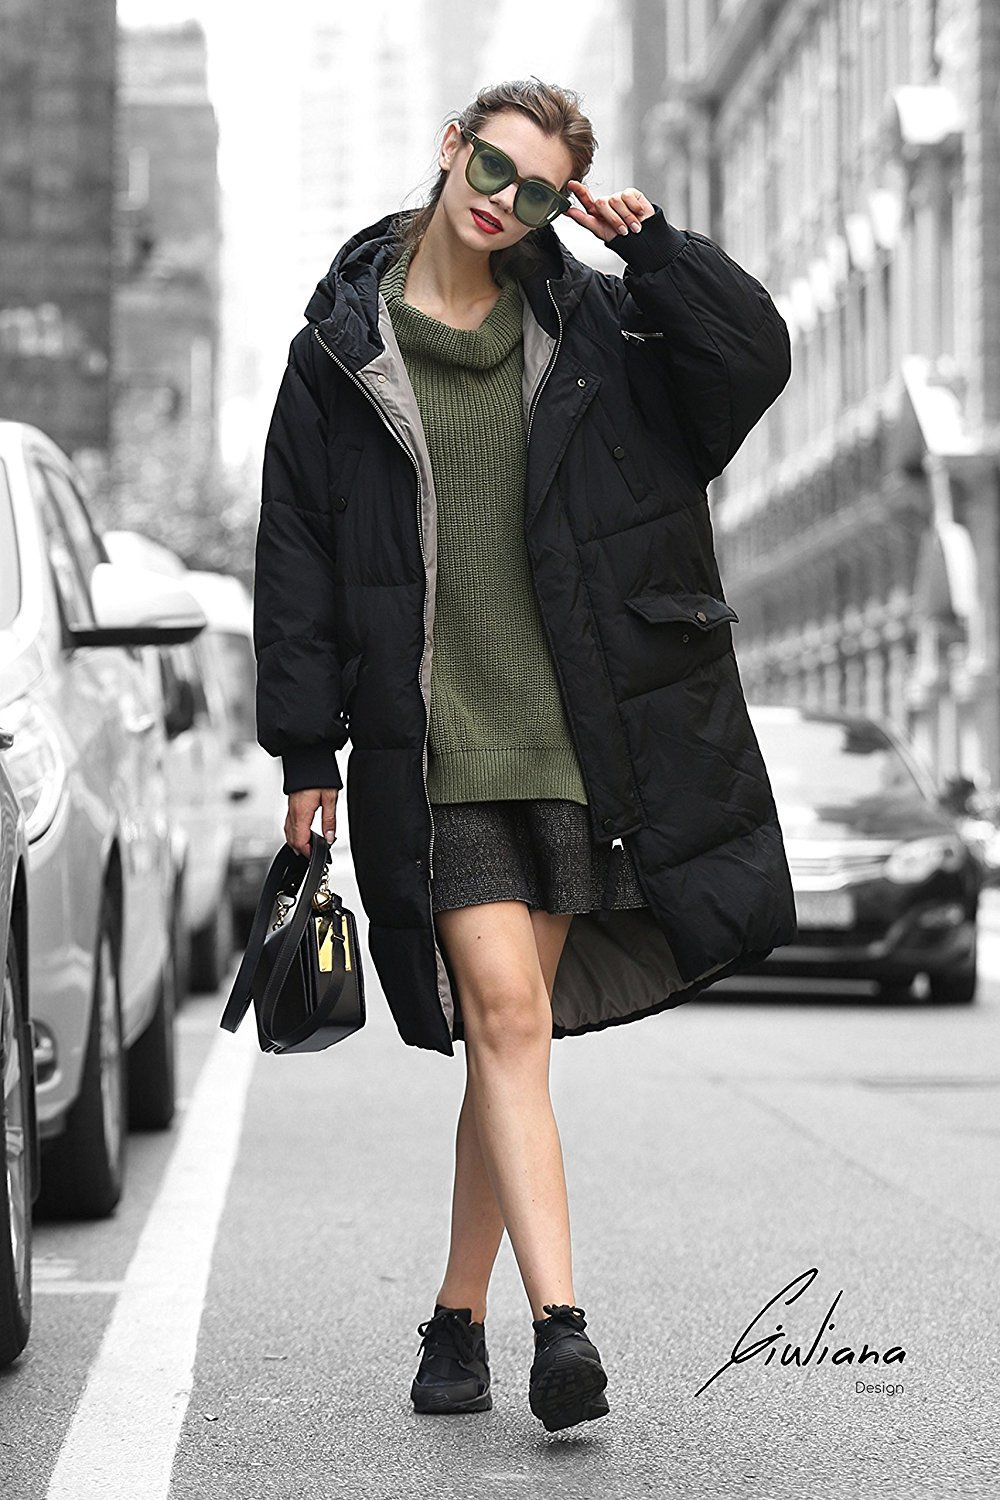 You U Women Water Stain Resistant Anorak Winter Long Quilted Coat At Amazon Women S Coats Shop Long Quilted Coat Waterproof Jacket Women Womens Spring Jackets [ 1500 x 1000 Pixel ]